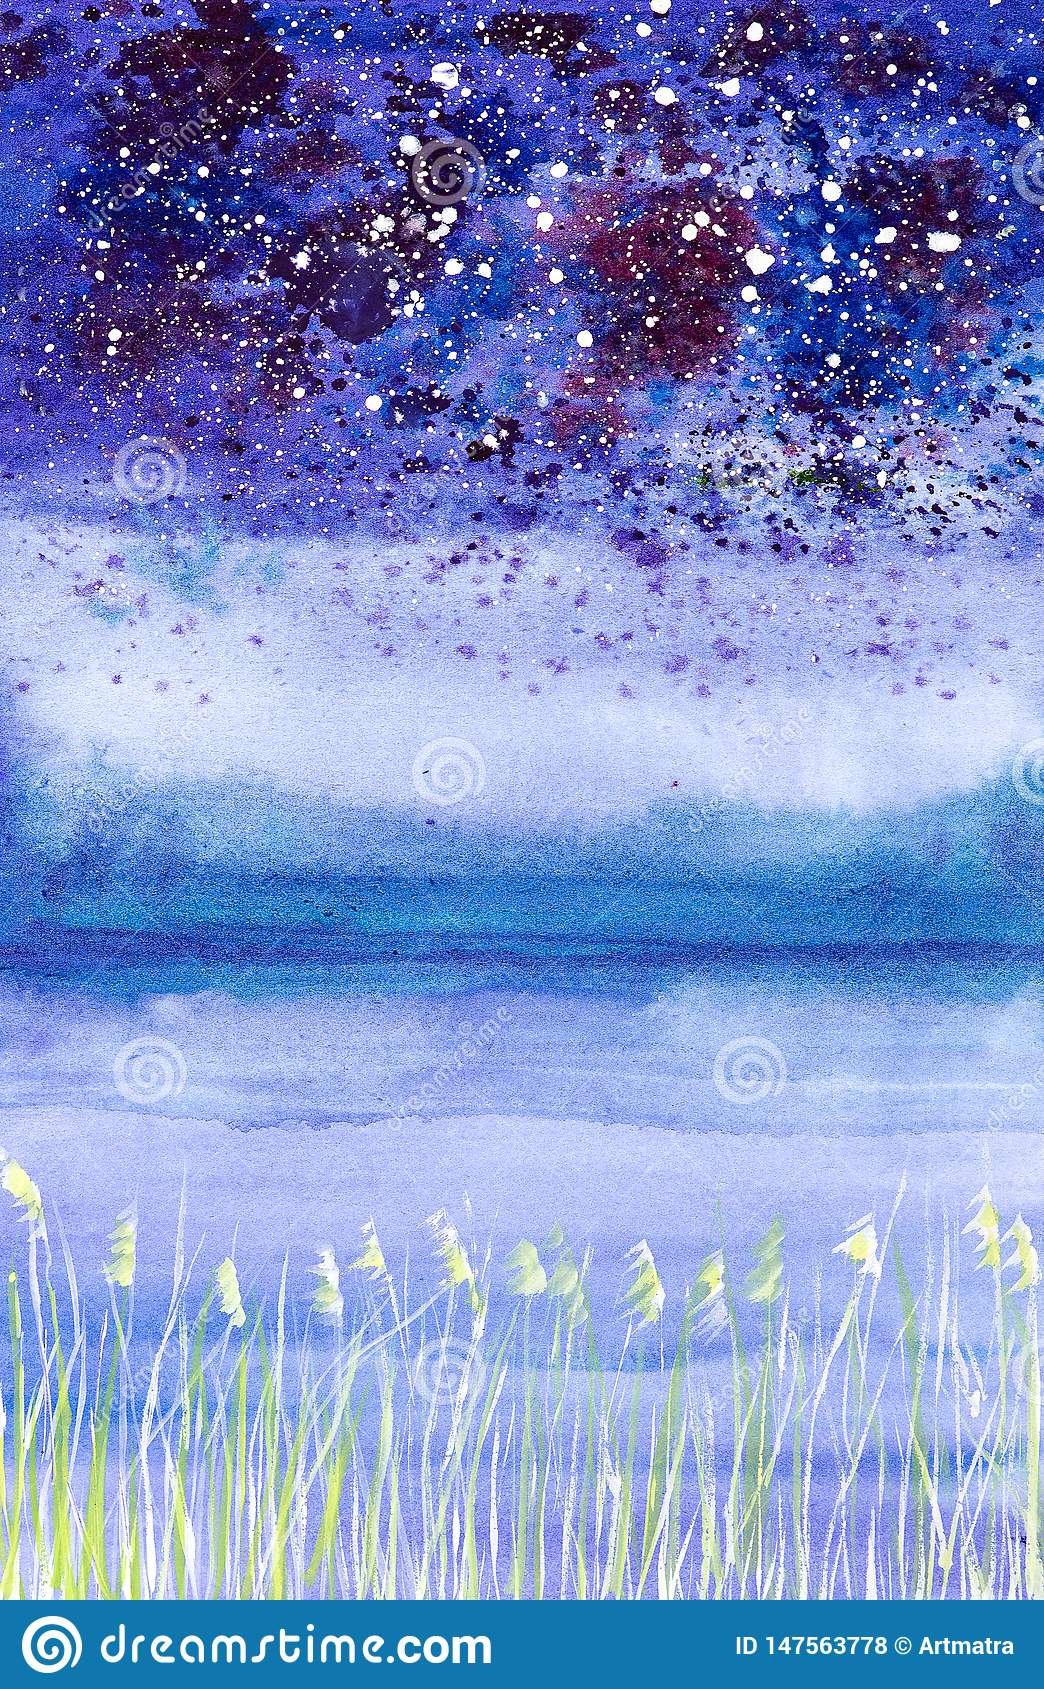 Abstract watercolor illustration of a night landscape with falling snow on the field and bushes